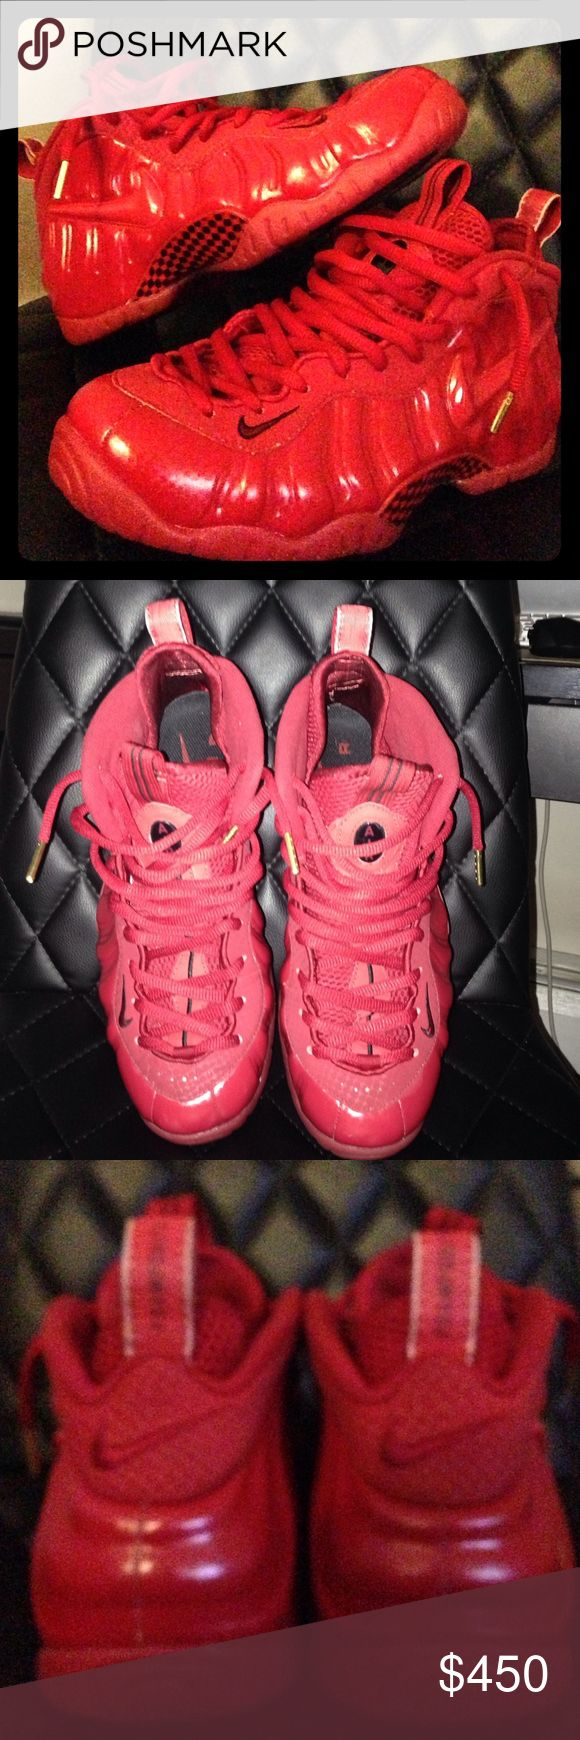 Nike 'Red October' Yeezy Foamposite Pre-owned Premium Consignment. Triple Gym Red, Gold Tassel w/ Red & Black Carbon Fiber Siding. Men's size 9.5. Authentic Nike. Includes OG Box (no lid & damaged) Nike Shoes Sneakers